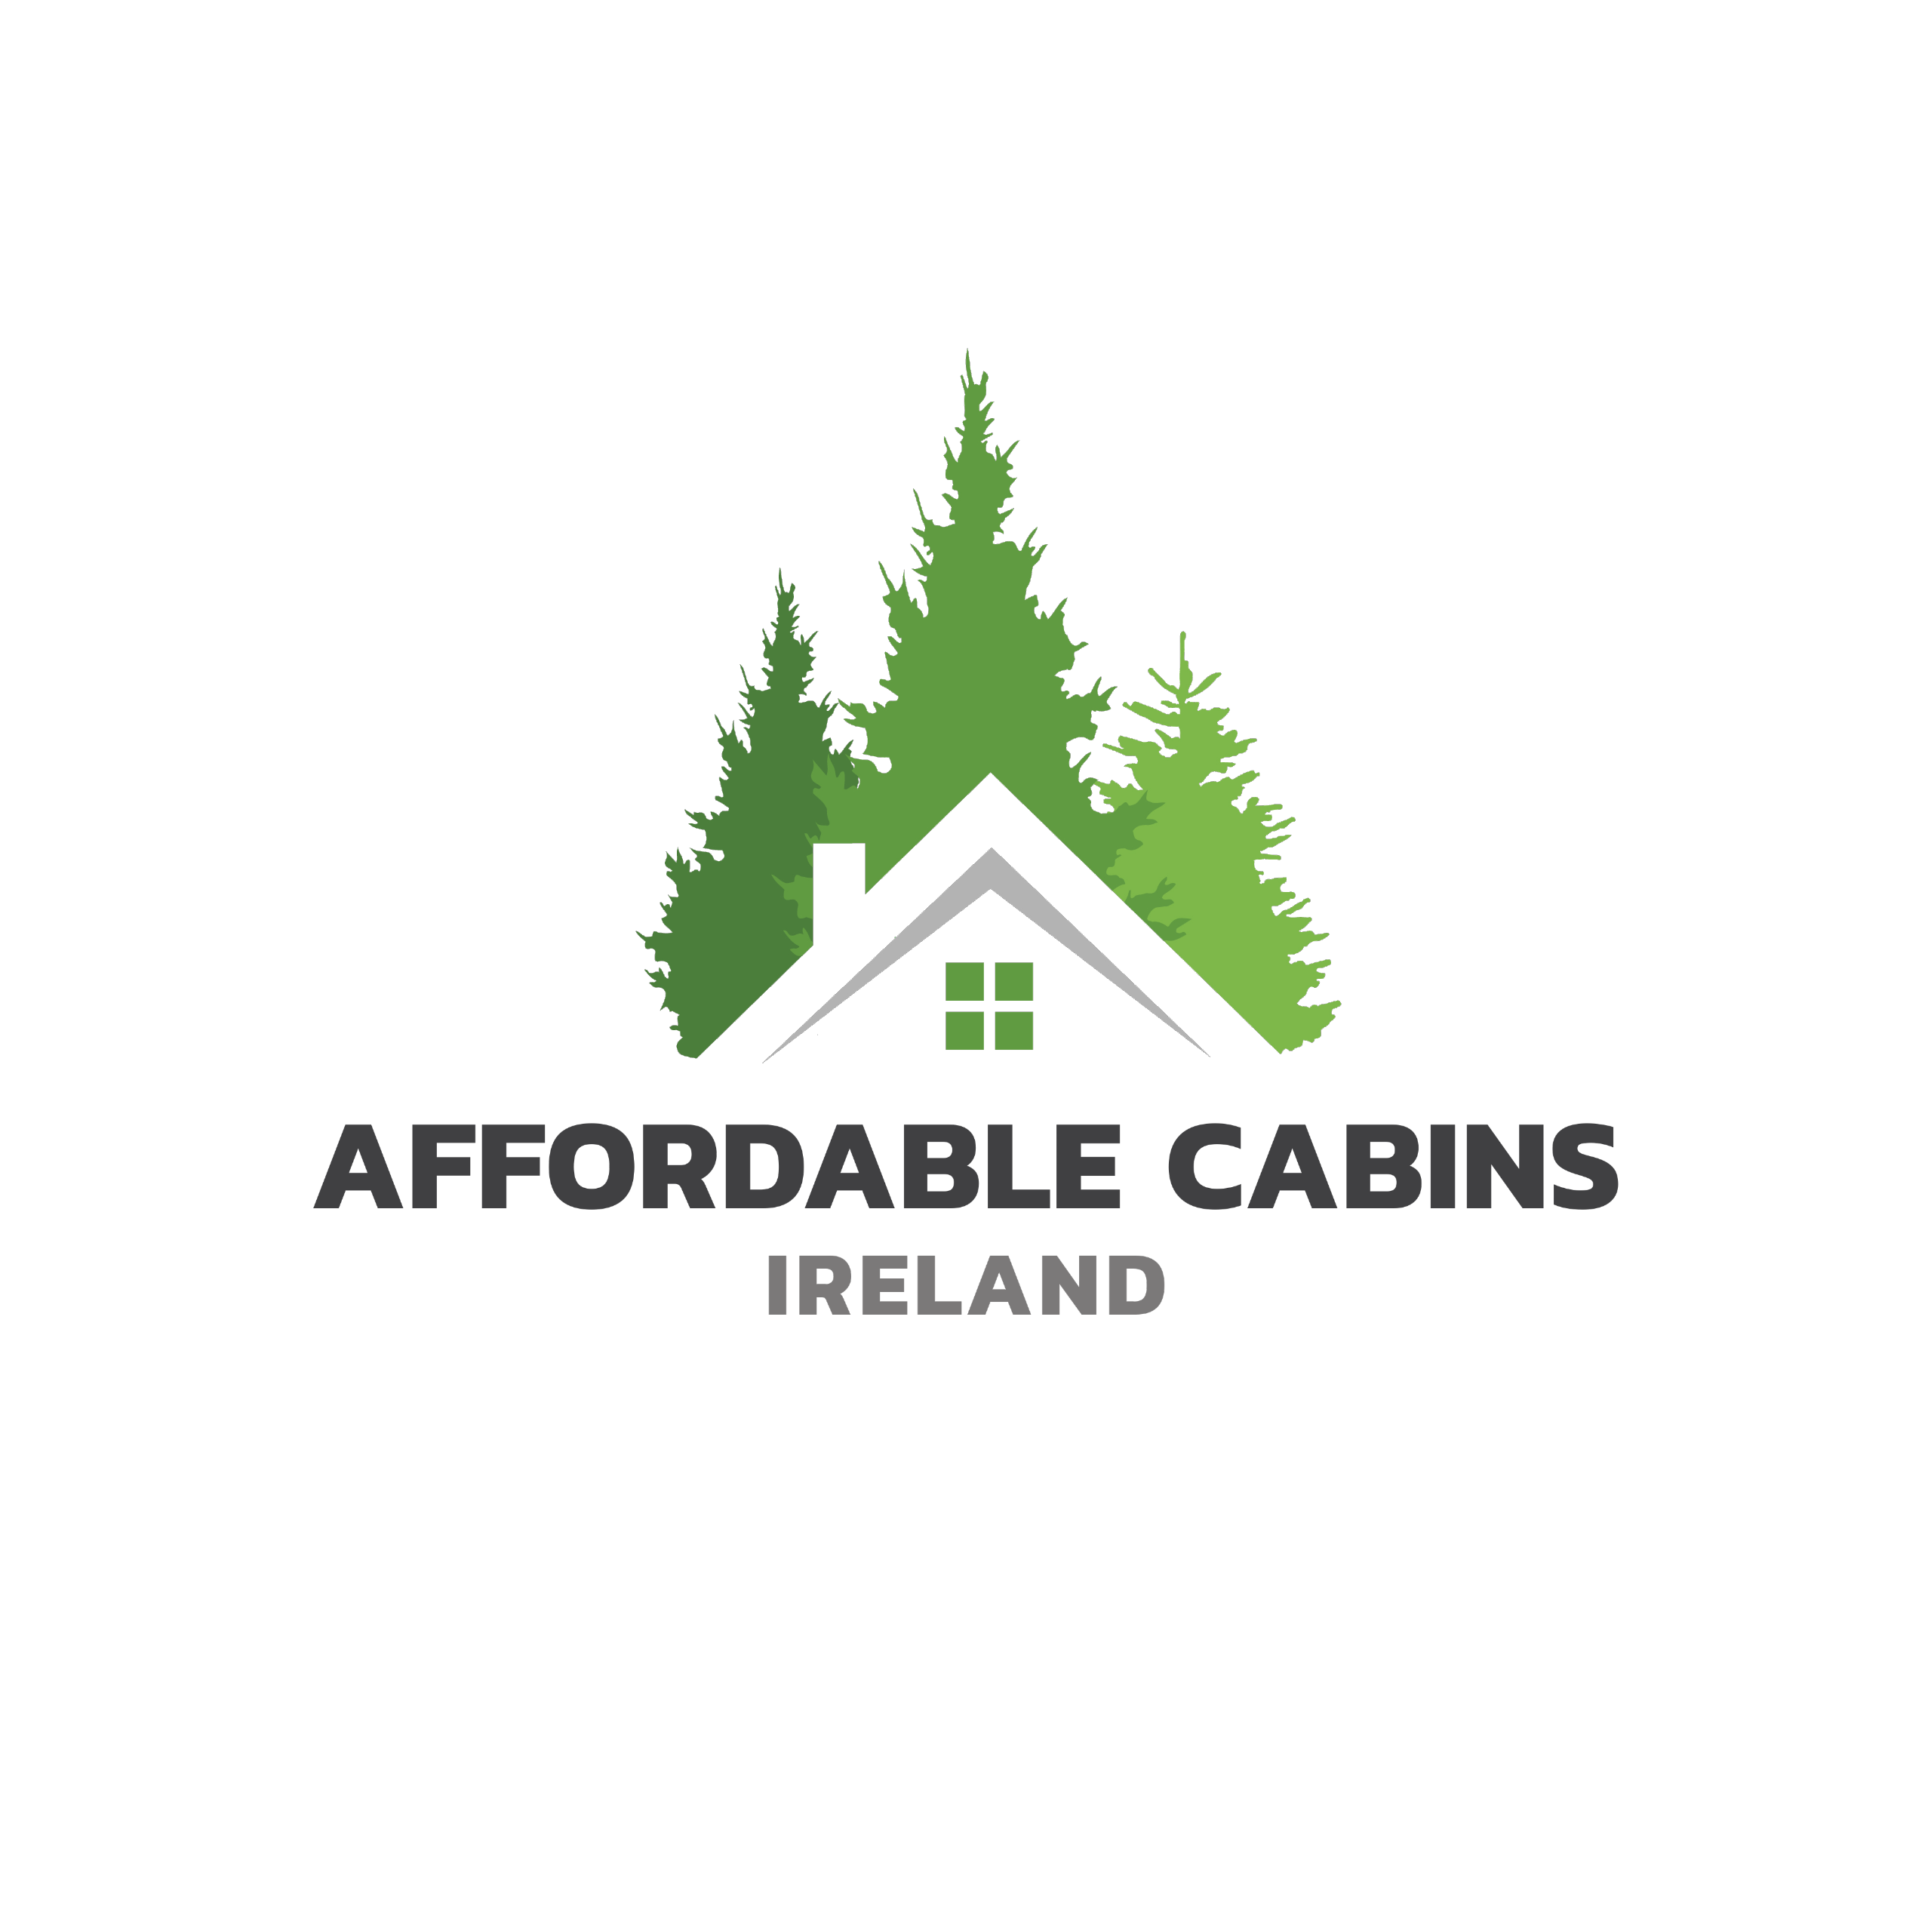 Affordable Cabins Ireland Logo